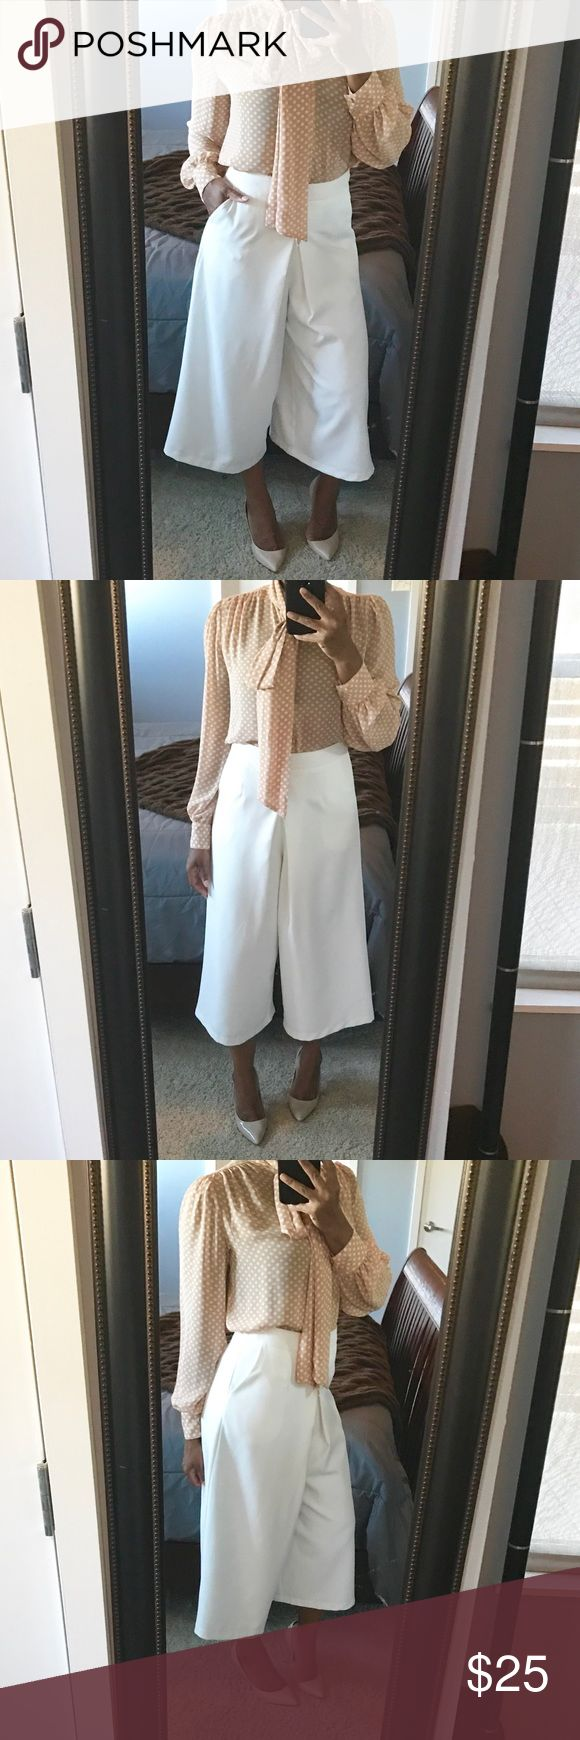 Semi Casual Culottes!! Semi casual white culottes featuring concealed back zip with hook closure and functioning side pockets!! Gently used condition!! True to size! L'ATISTE Pants